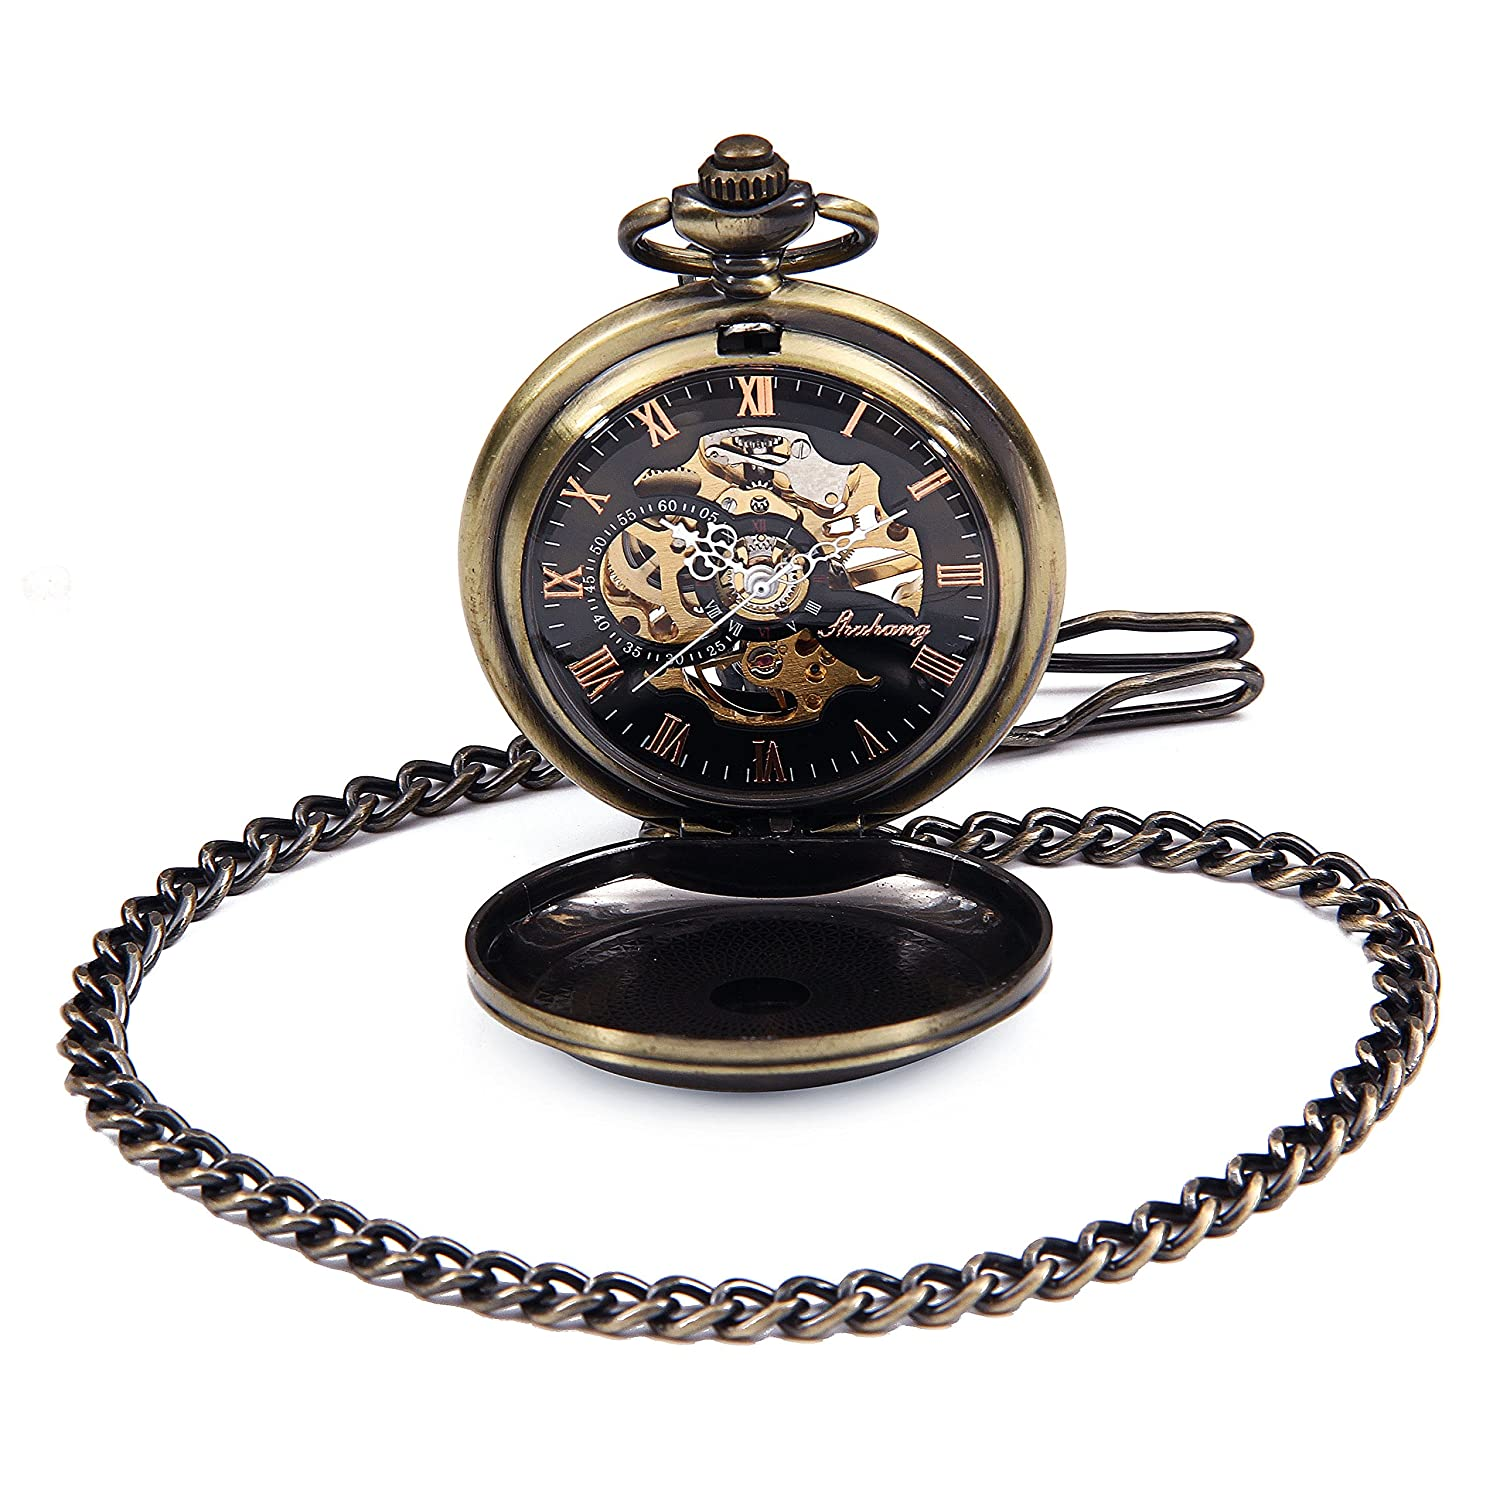 Amazon.com: Bronze Tone Case Roman Number Dial Steampunk Hand Wind Mens Mechanical Pocket Watch reloj de bolsillo: Watches